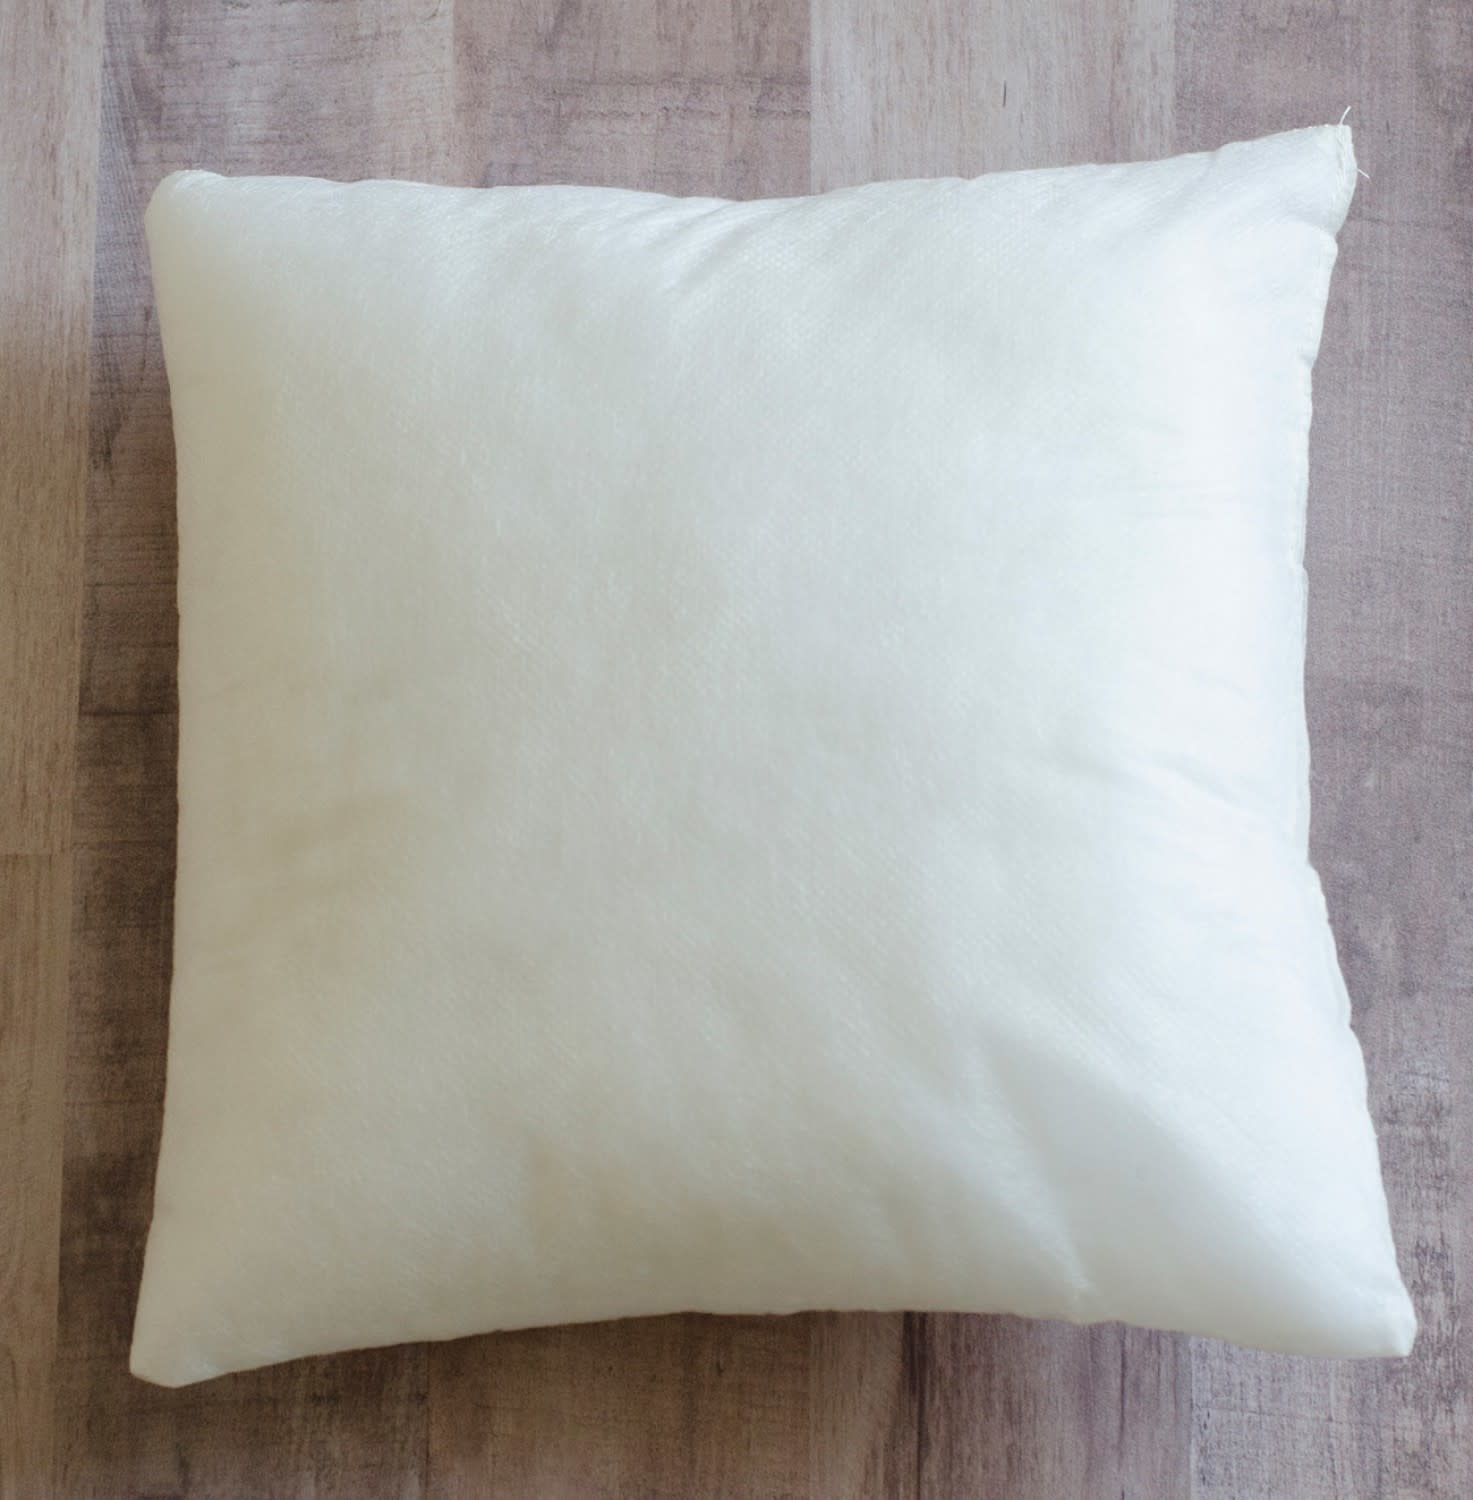 KIMBERBELL DESIGNS 8x8 Pillow Form